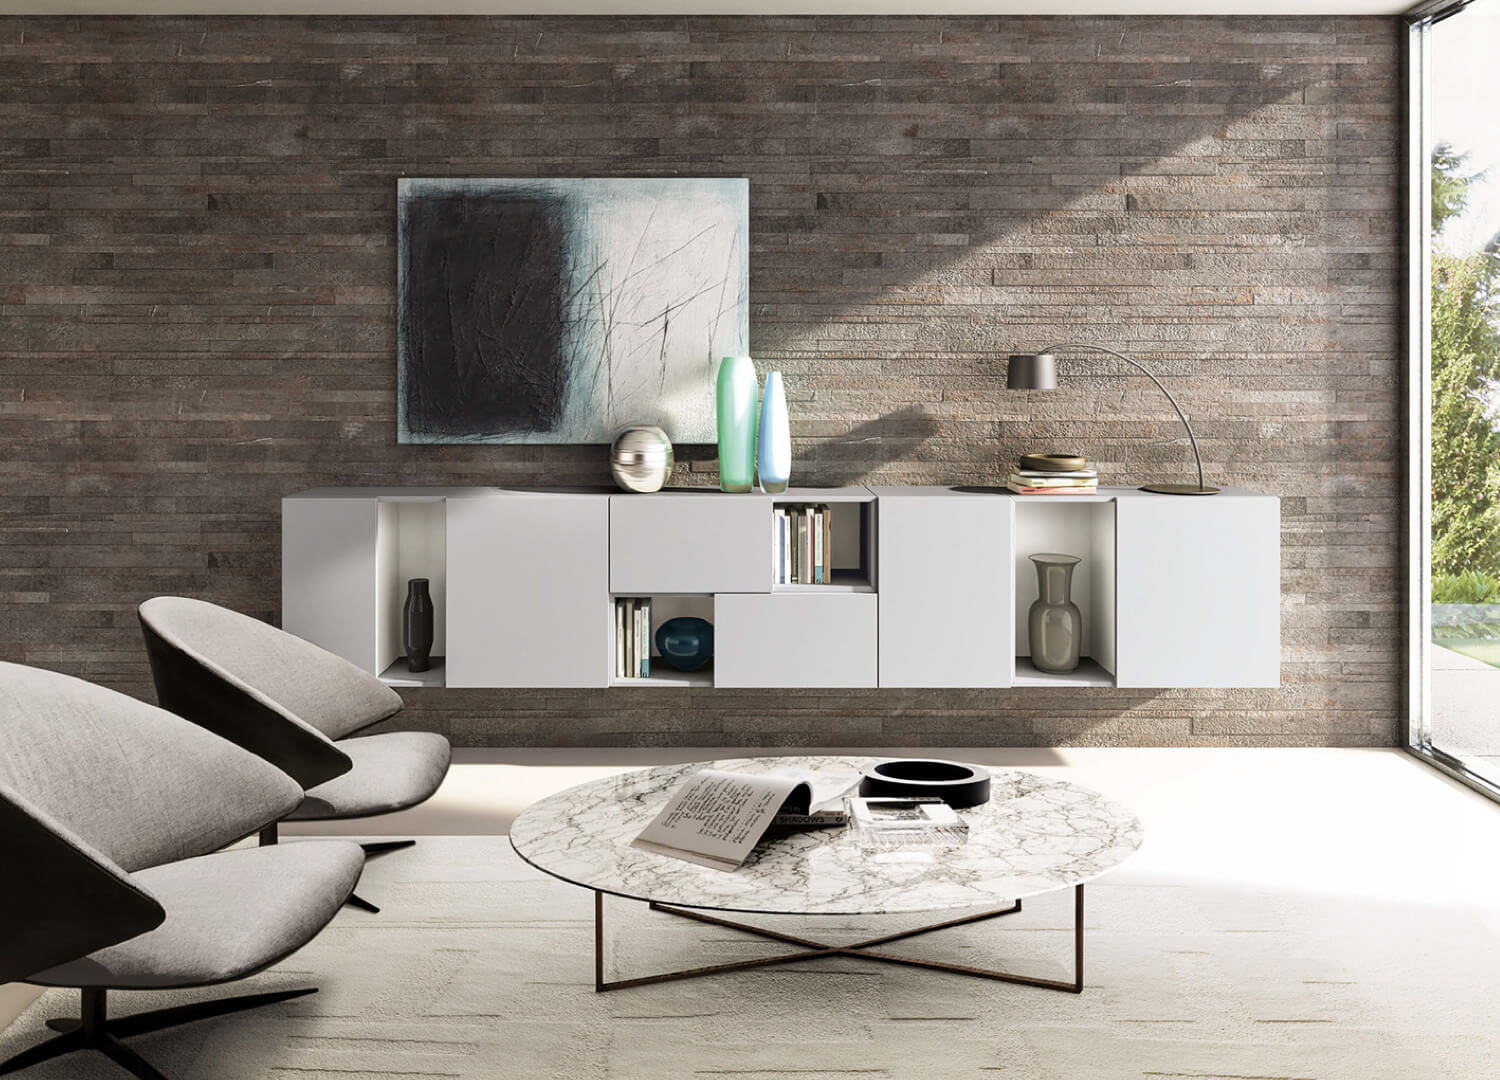 Koster Lounge Chair By Desiree For Henri Living Est Living